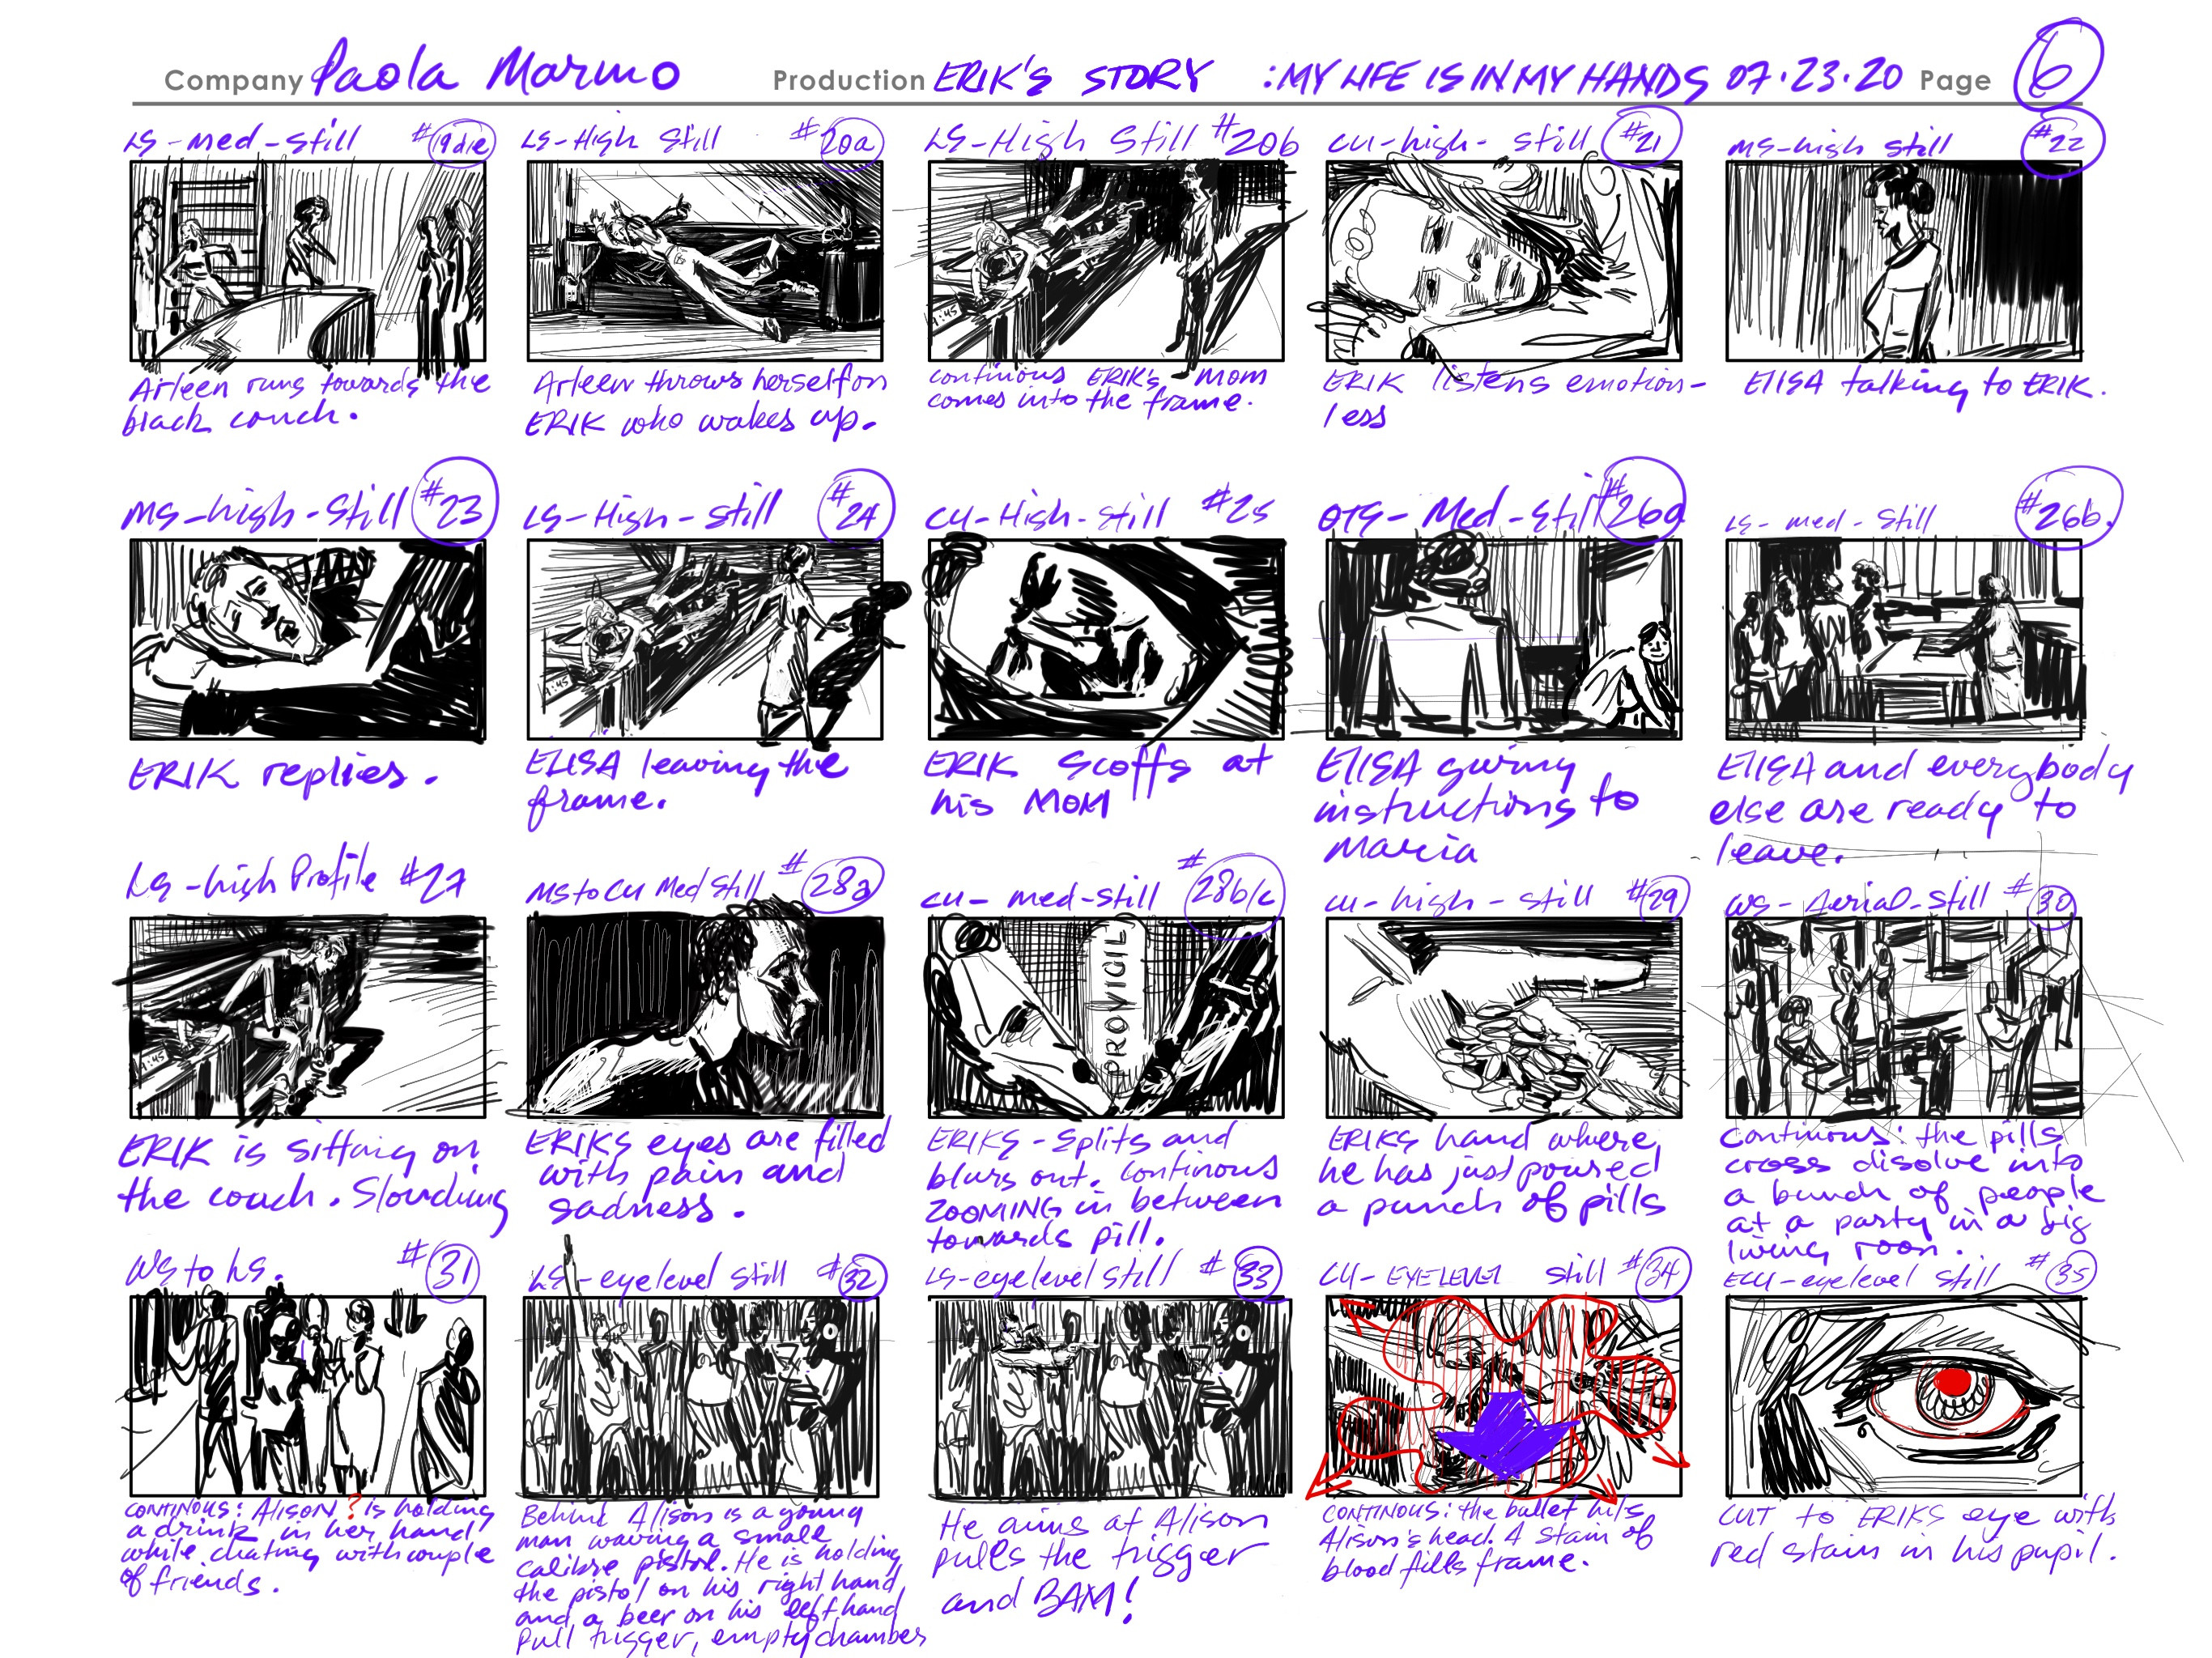 Thumbnails created for a Paola Marino film created by VInce Mancuso